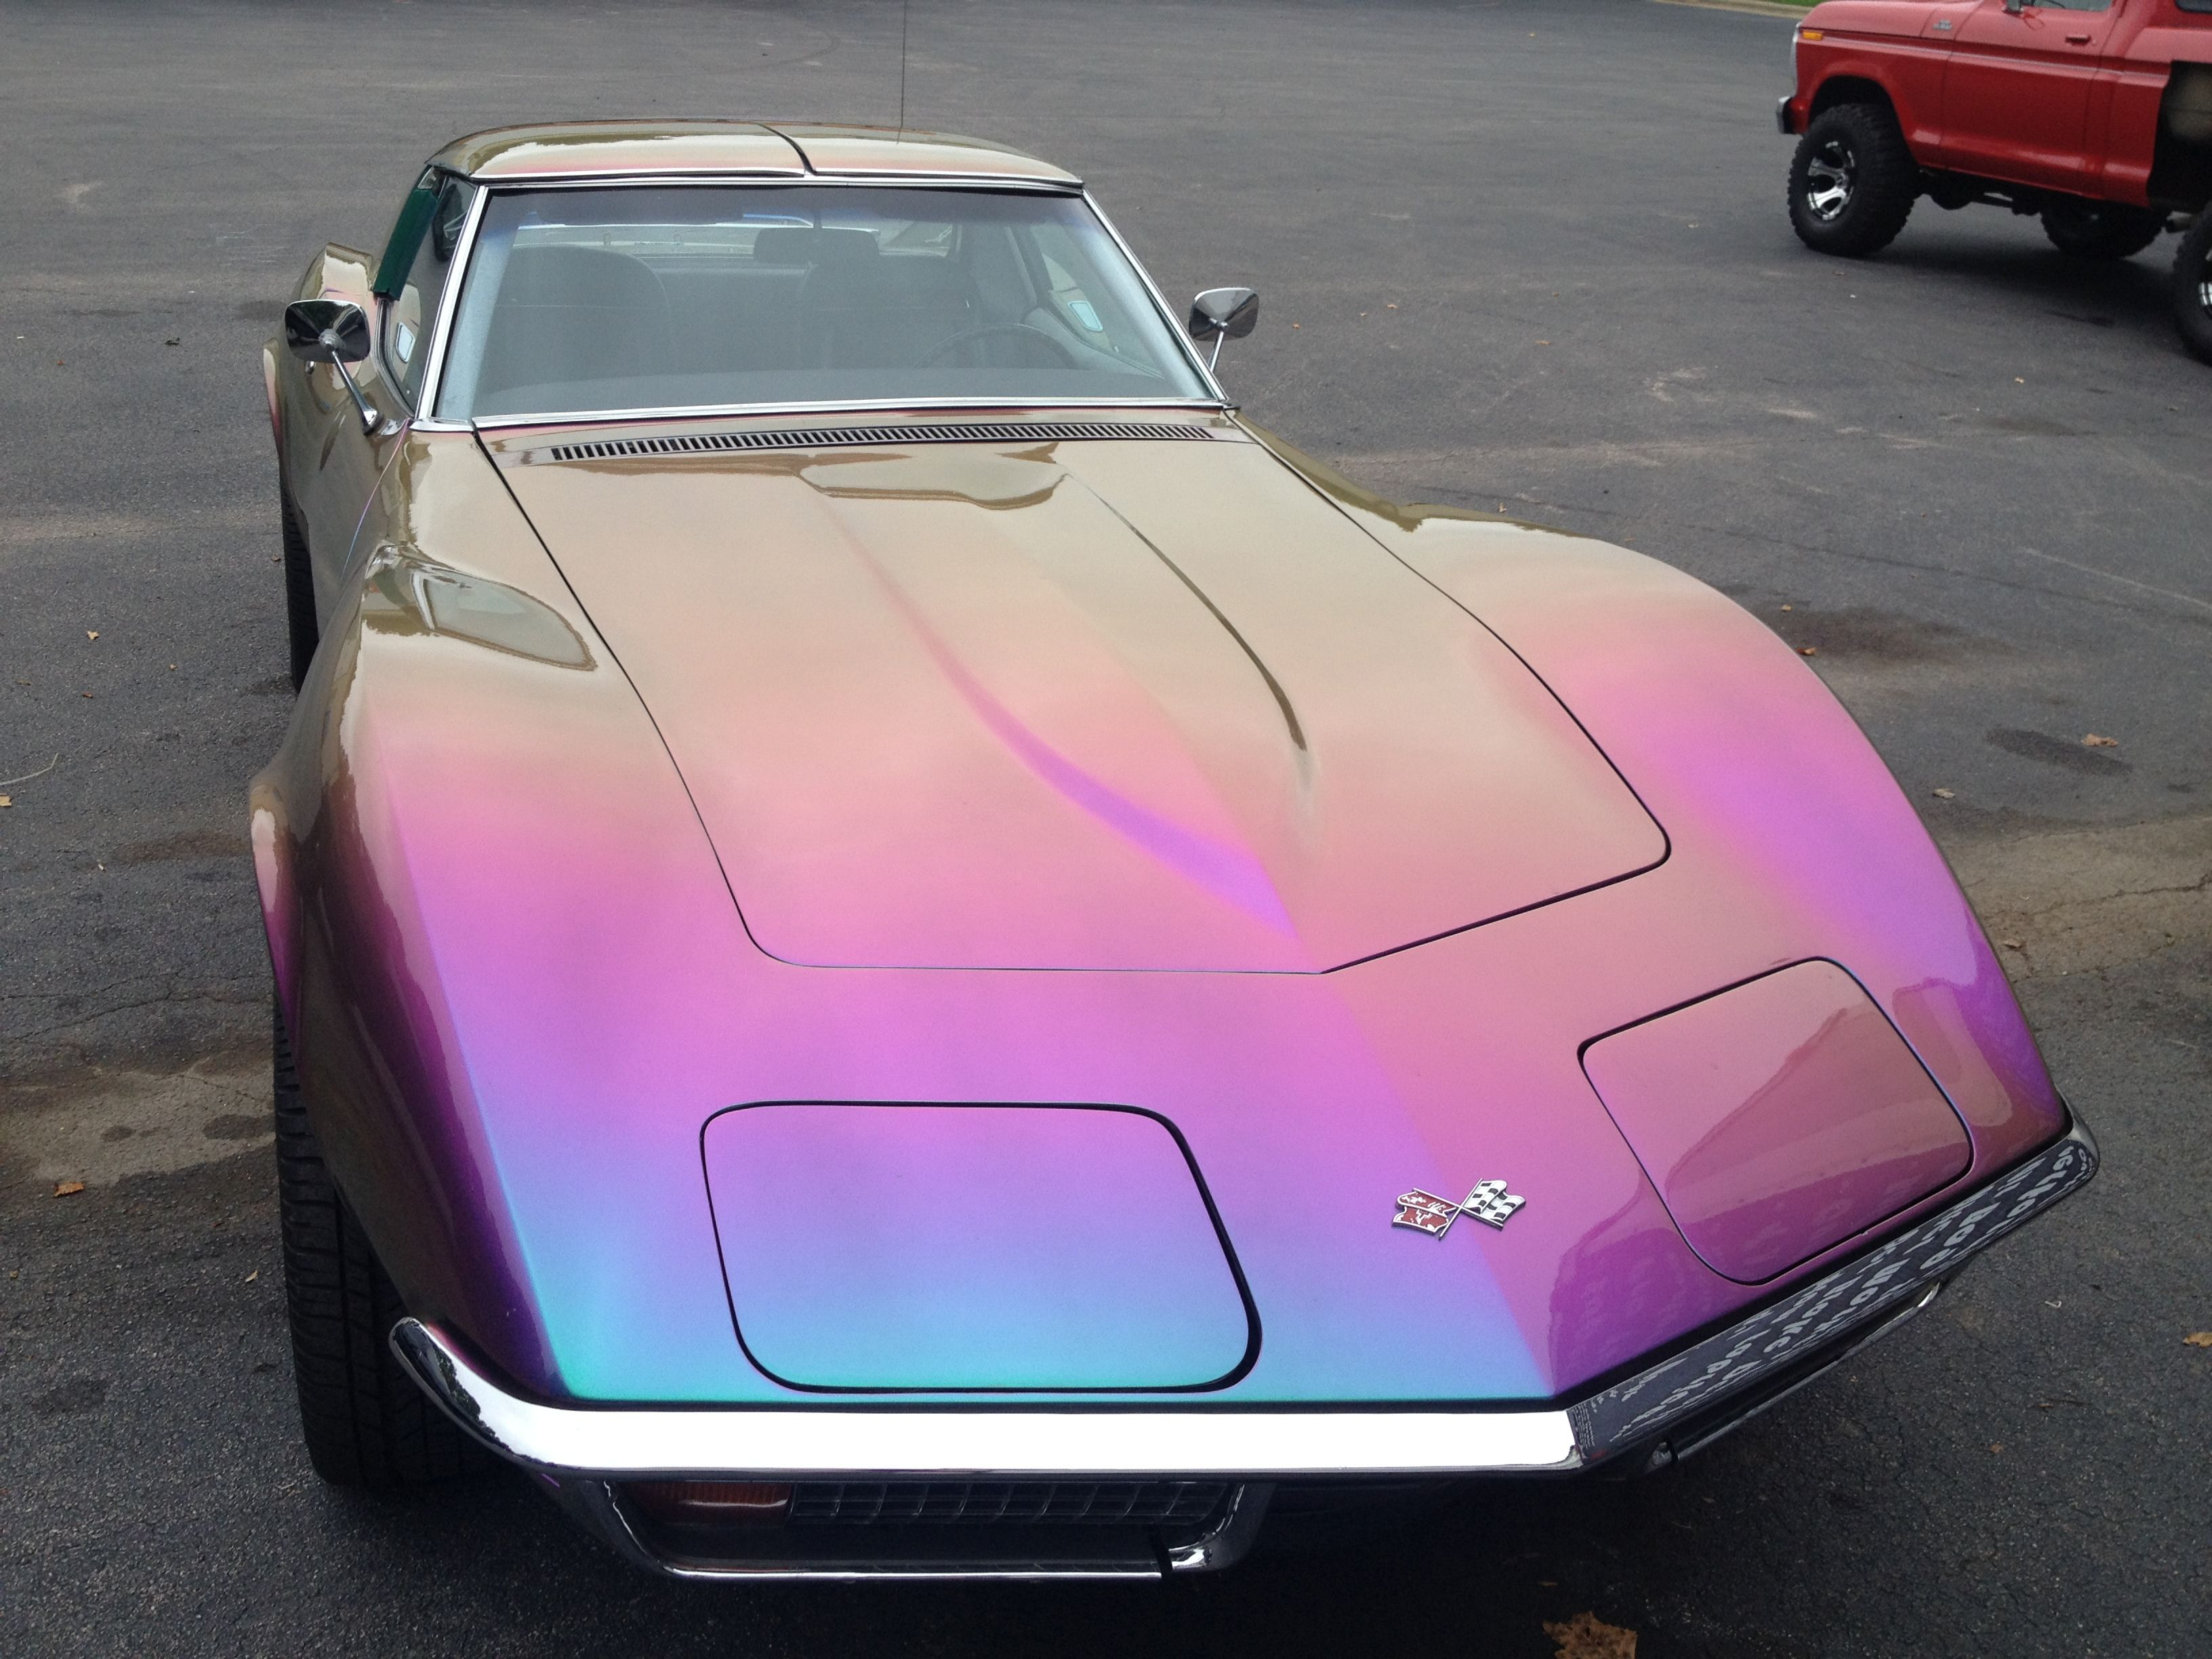 Corvette Restorations And Custom Painting Here At Quarter Mile Muscle Inc We Offer High Quality Automotive Resto Pink Car Corvette Restoration Car Paint Jobs